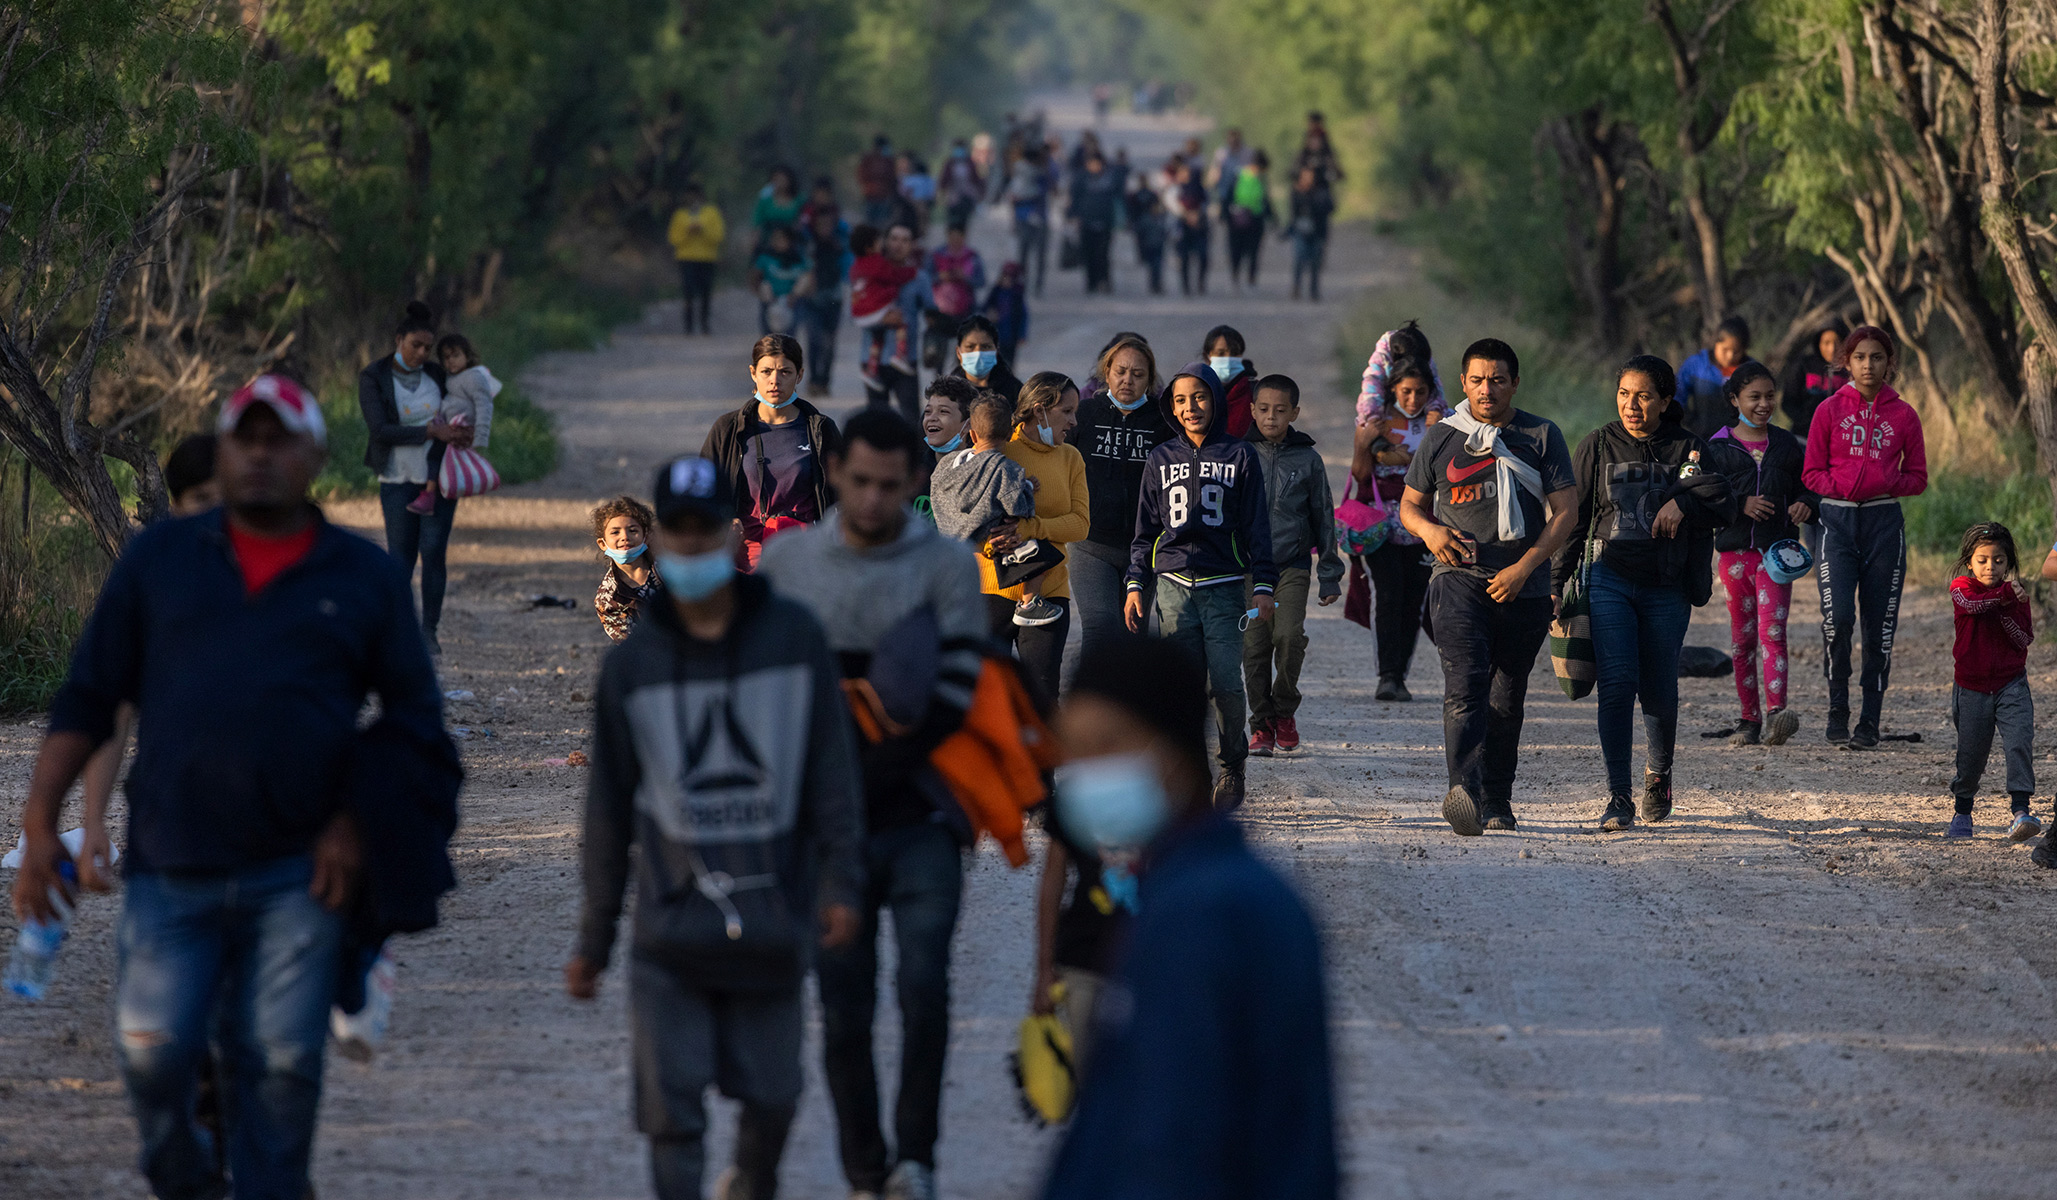 Illegal Immigration: Biden Administration Has Released More Than 70,000 Illegal Immigrants into U.S.